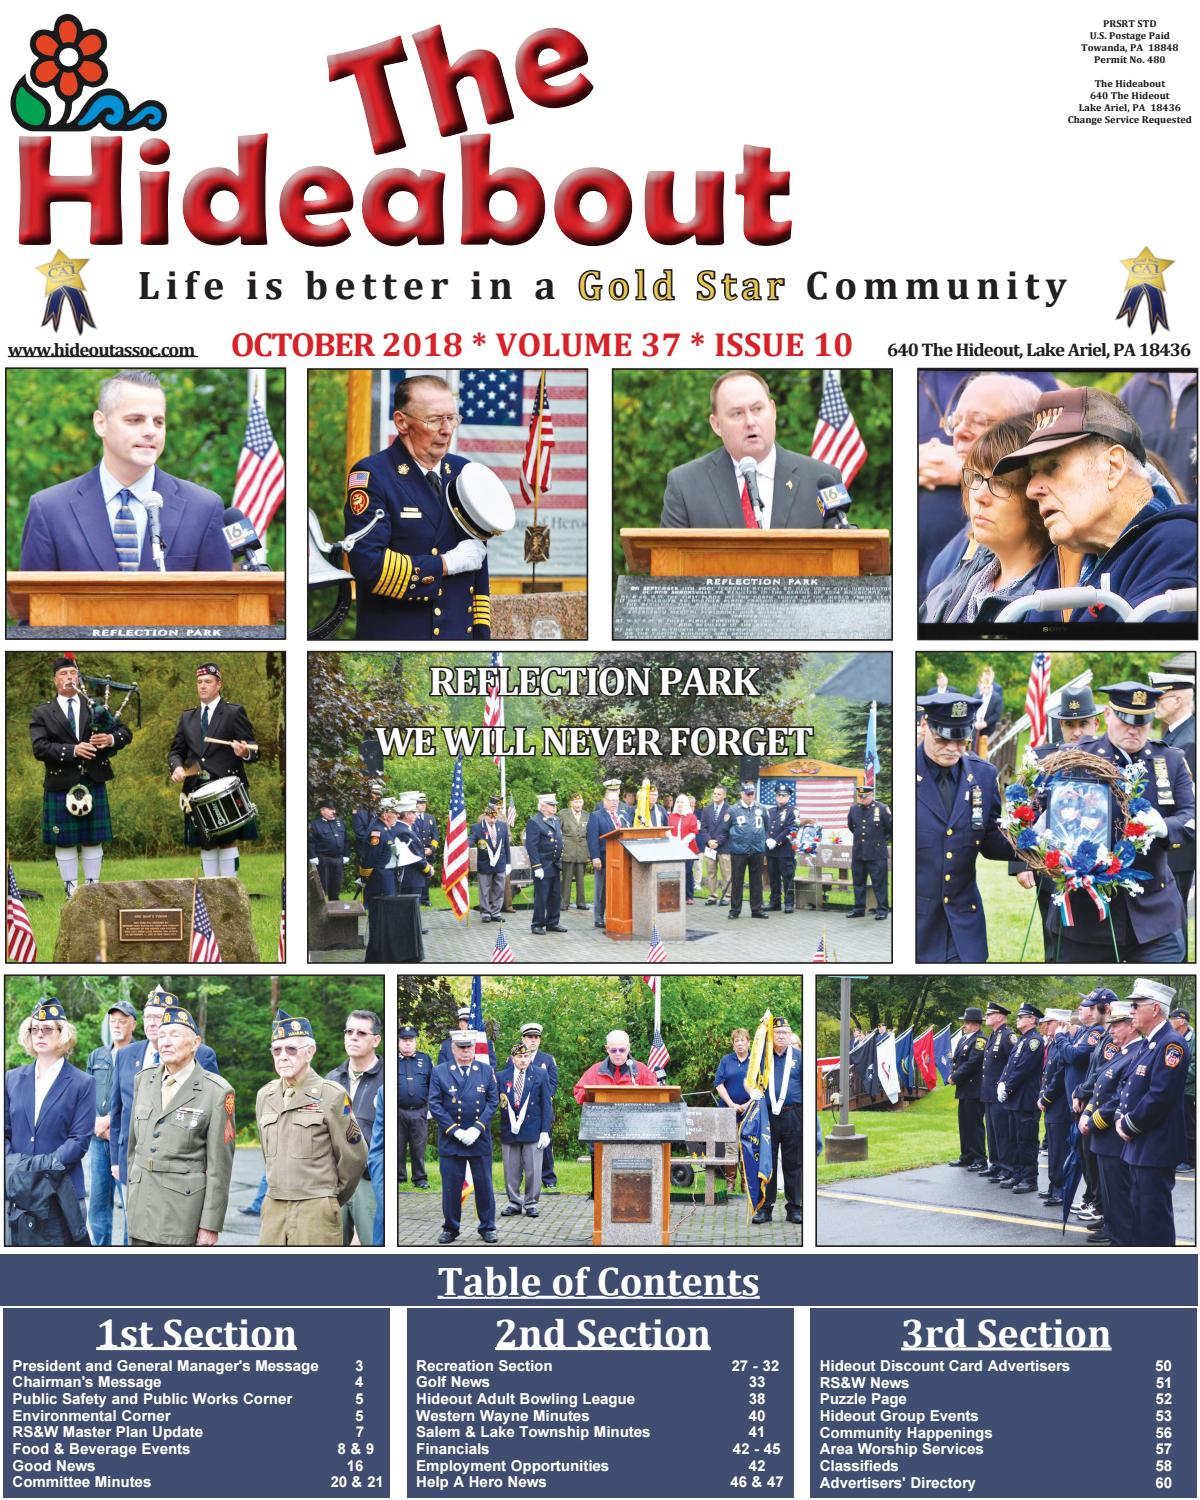 7a63aa9c4d The Hideabout October 2018 by The Hideout - issuu